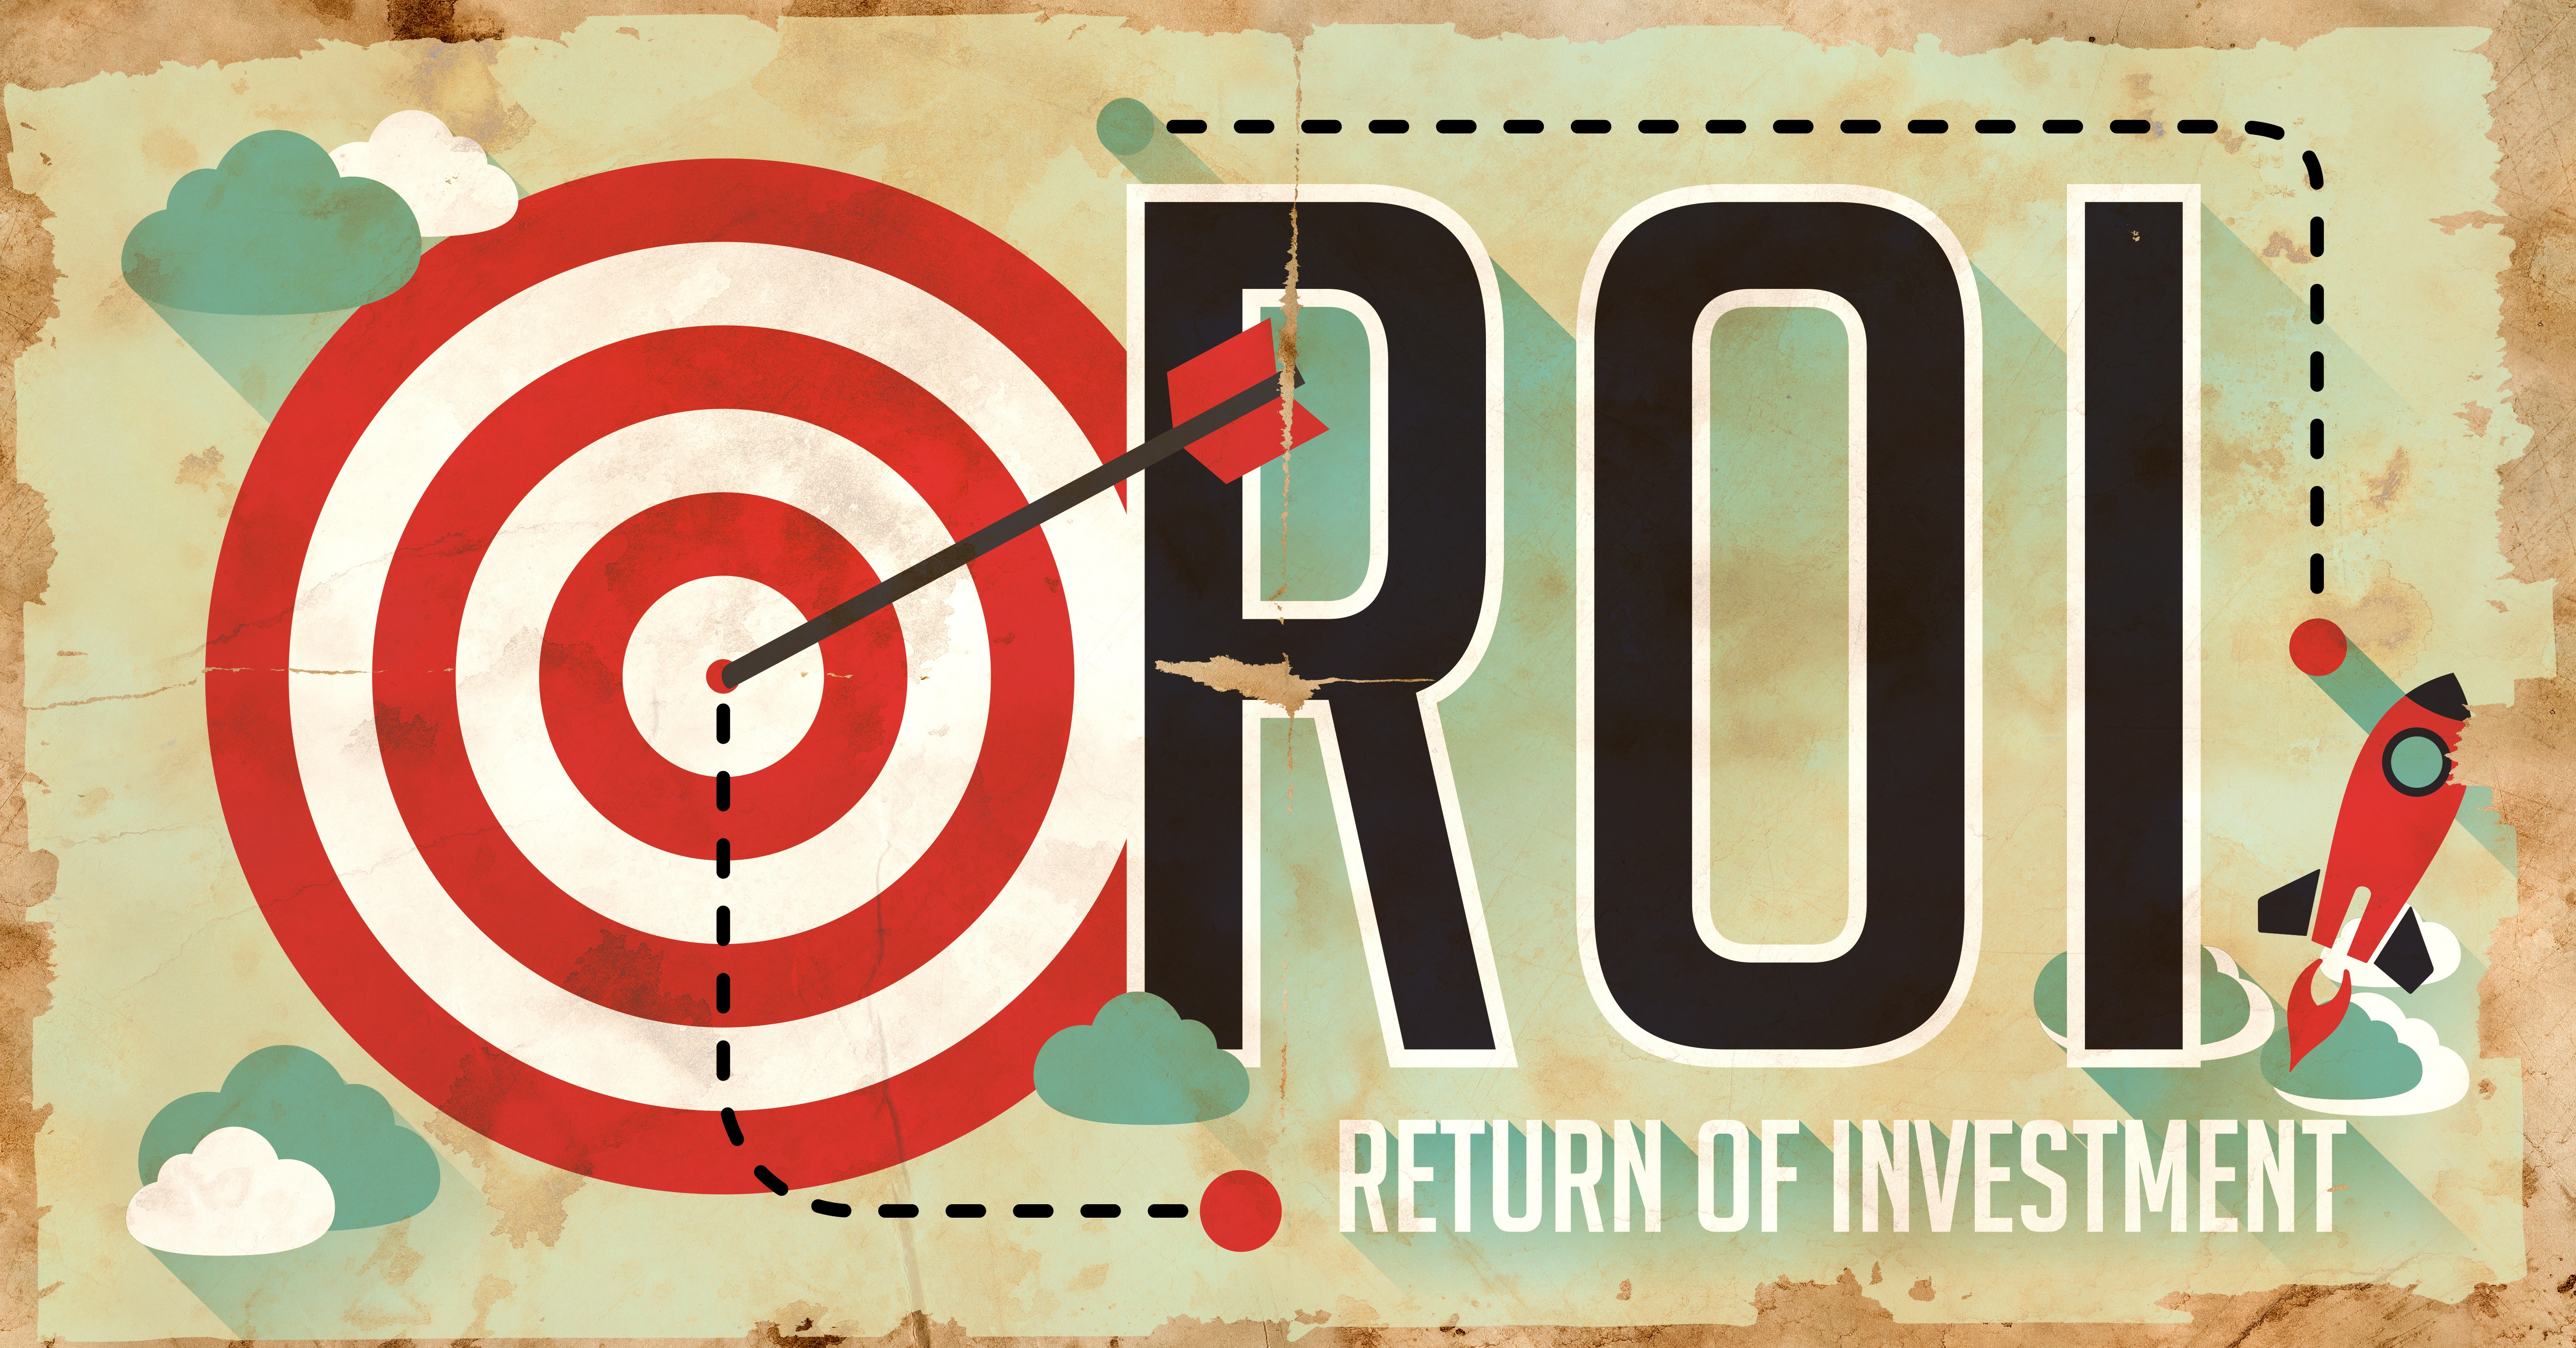 letters-ROI-with-bullseye-and-clouds